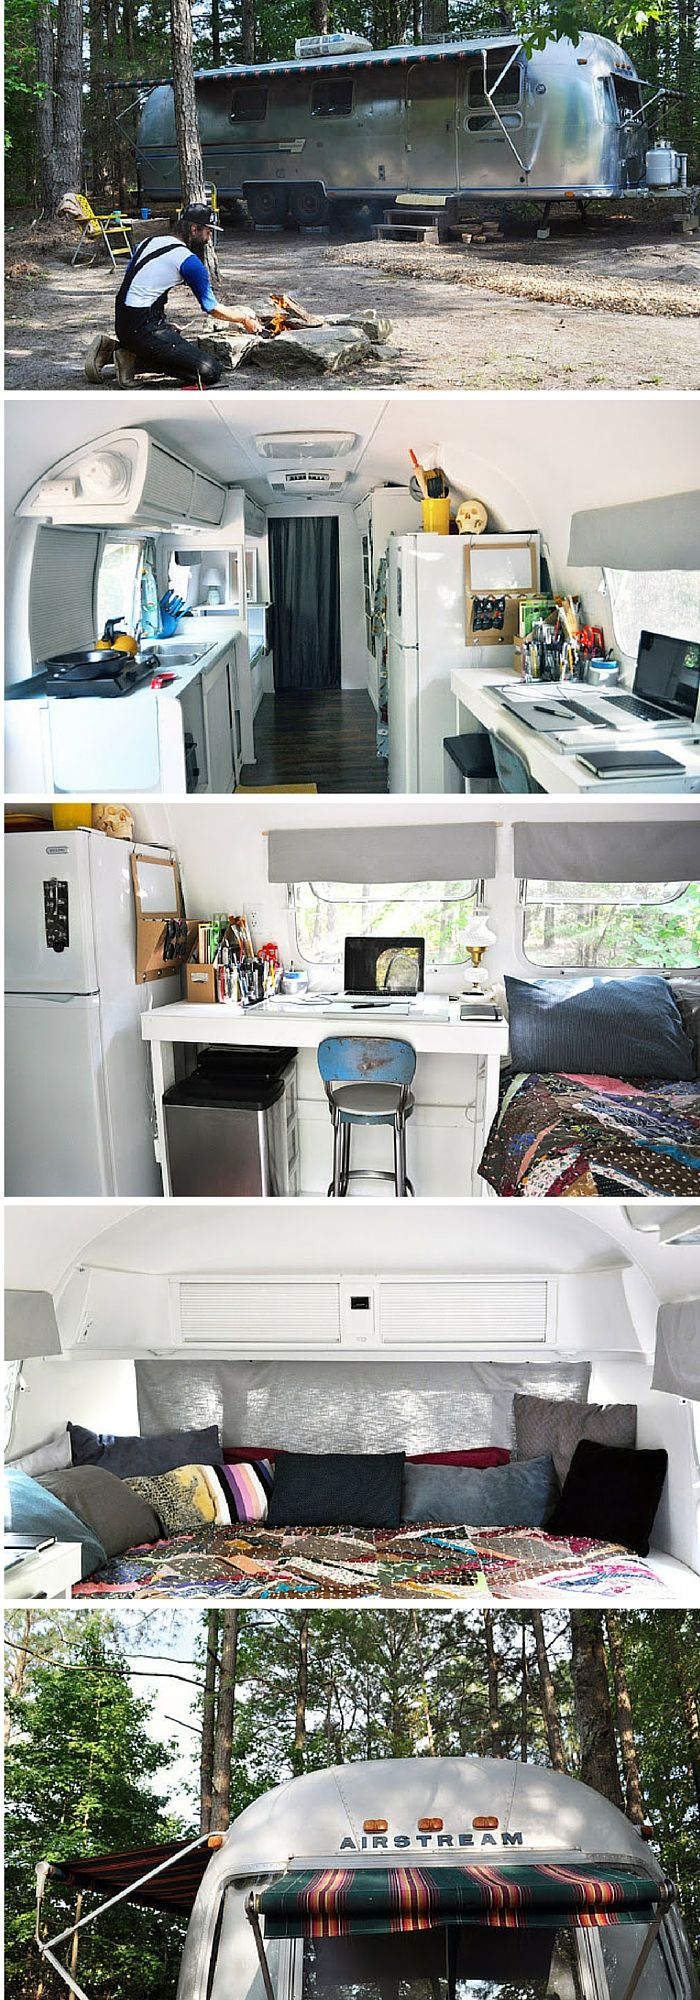 An Airstream trailer that was remodelled into a 188 sq ft home. Total cost : $6,500.